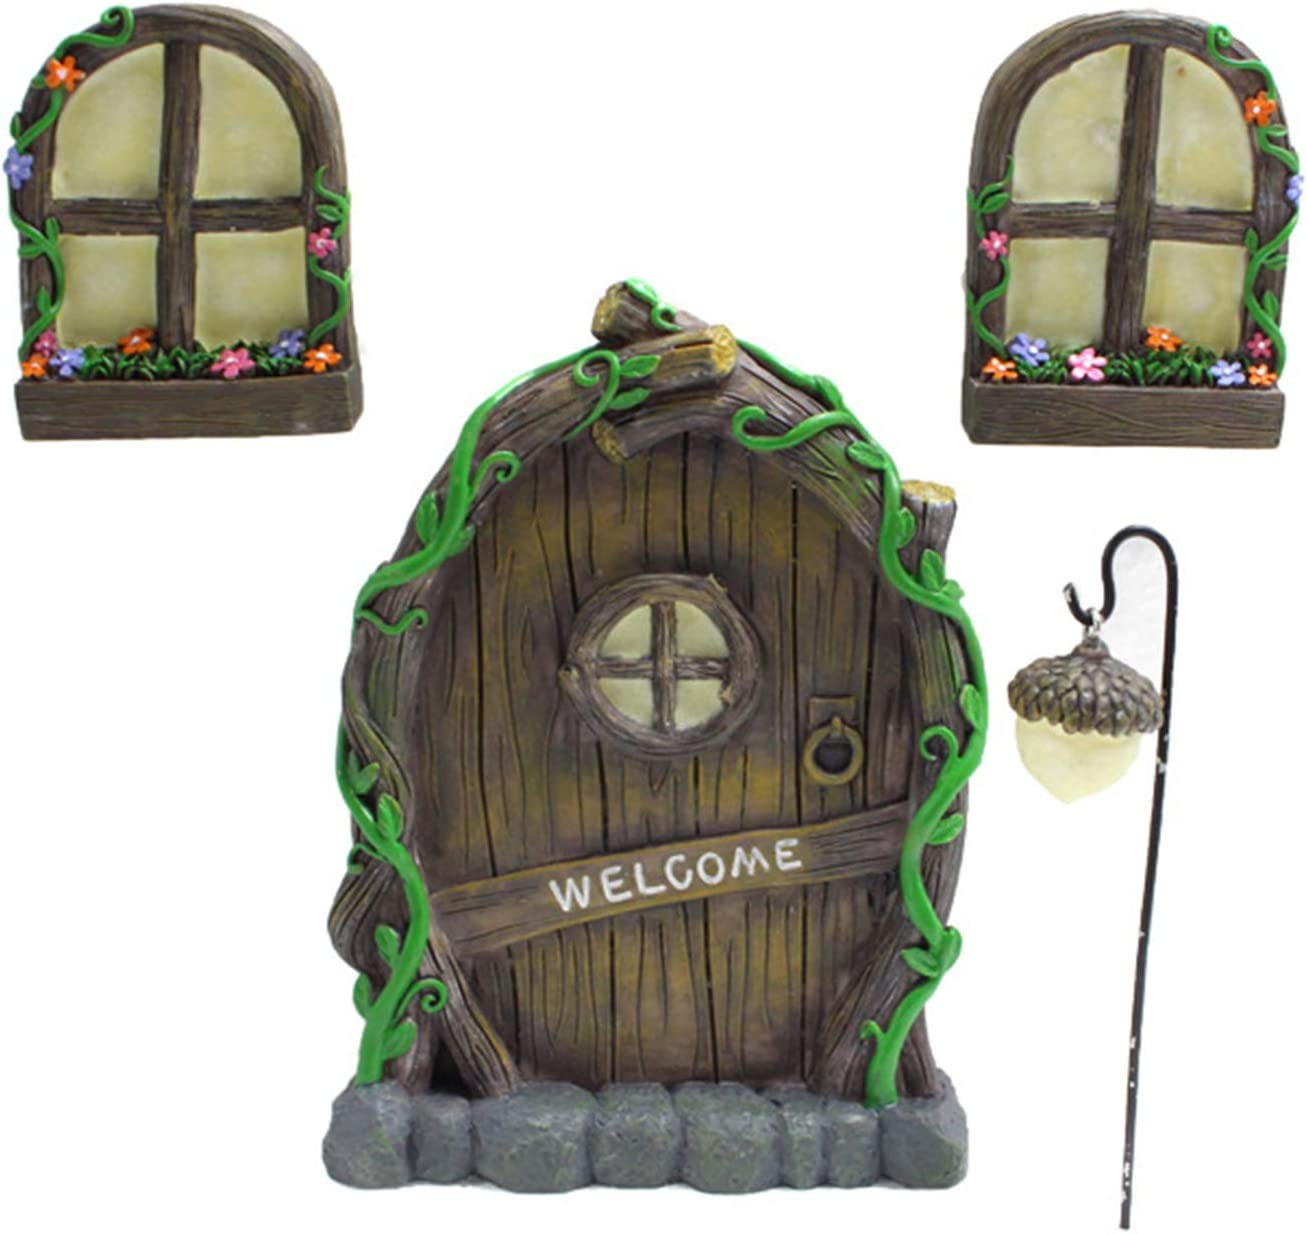 Canghai Fairy Doors for Trees with Two Windows and One Chandelier Glow in The Dark, Garden Sculptures and Yard Art, Decoration for Kids Room, Outdoor Decor Accessories(Multi)